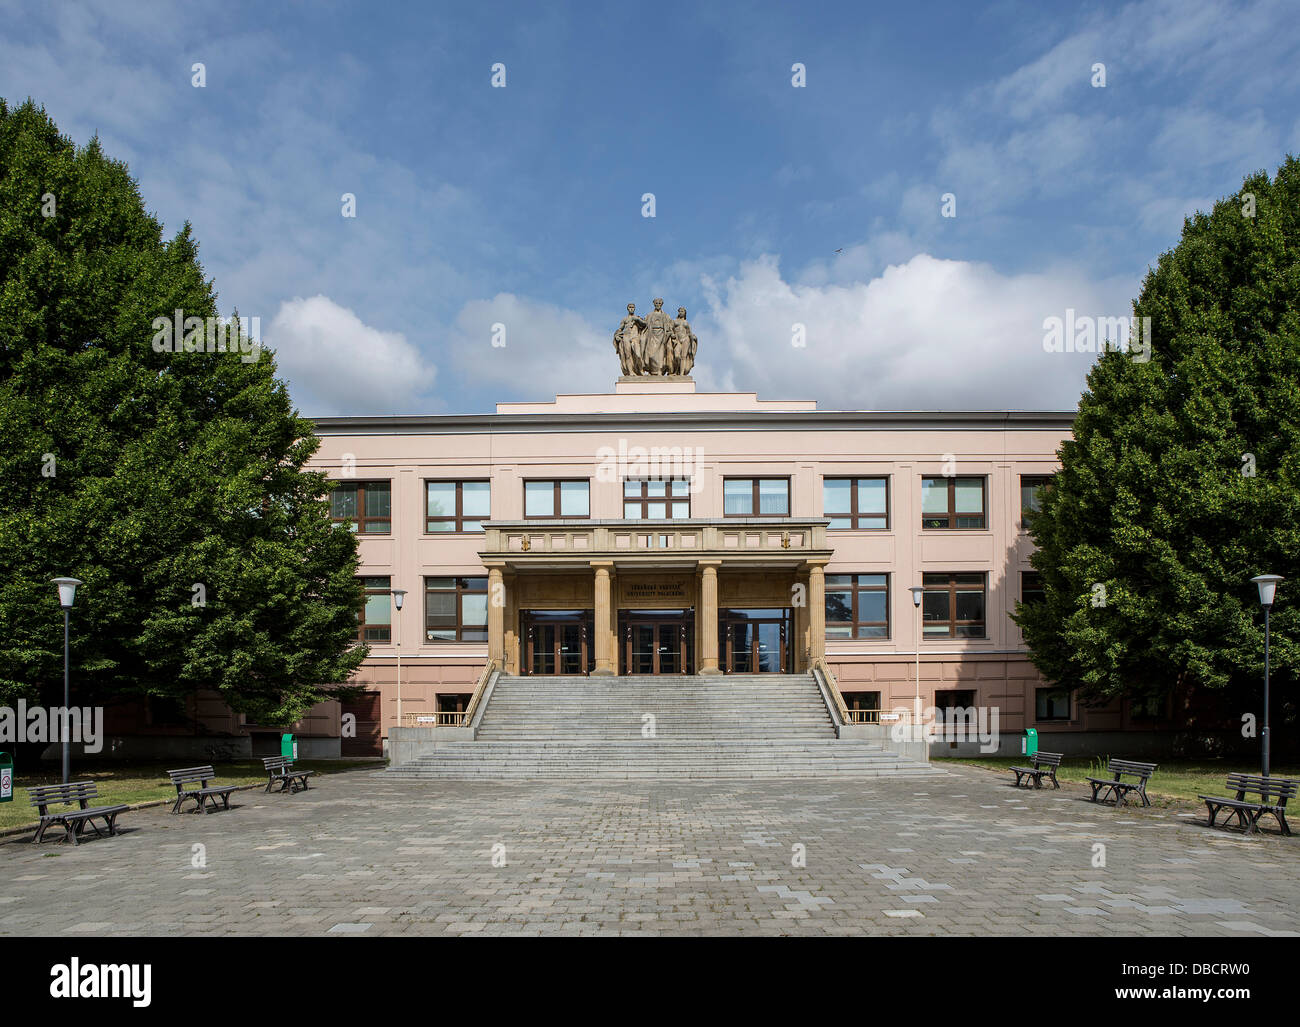 Faculty of Medicine and Dentistry of Palacky University in Olomouc - Stock Image